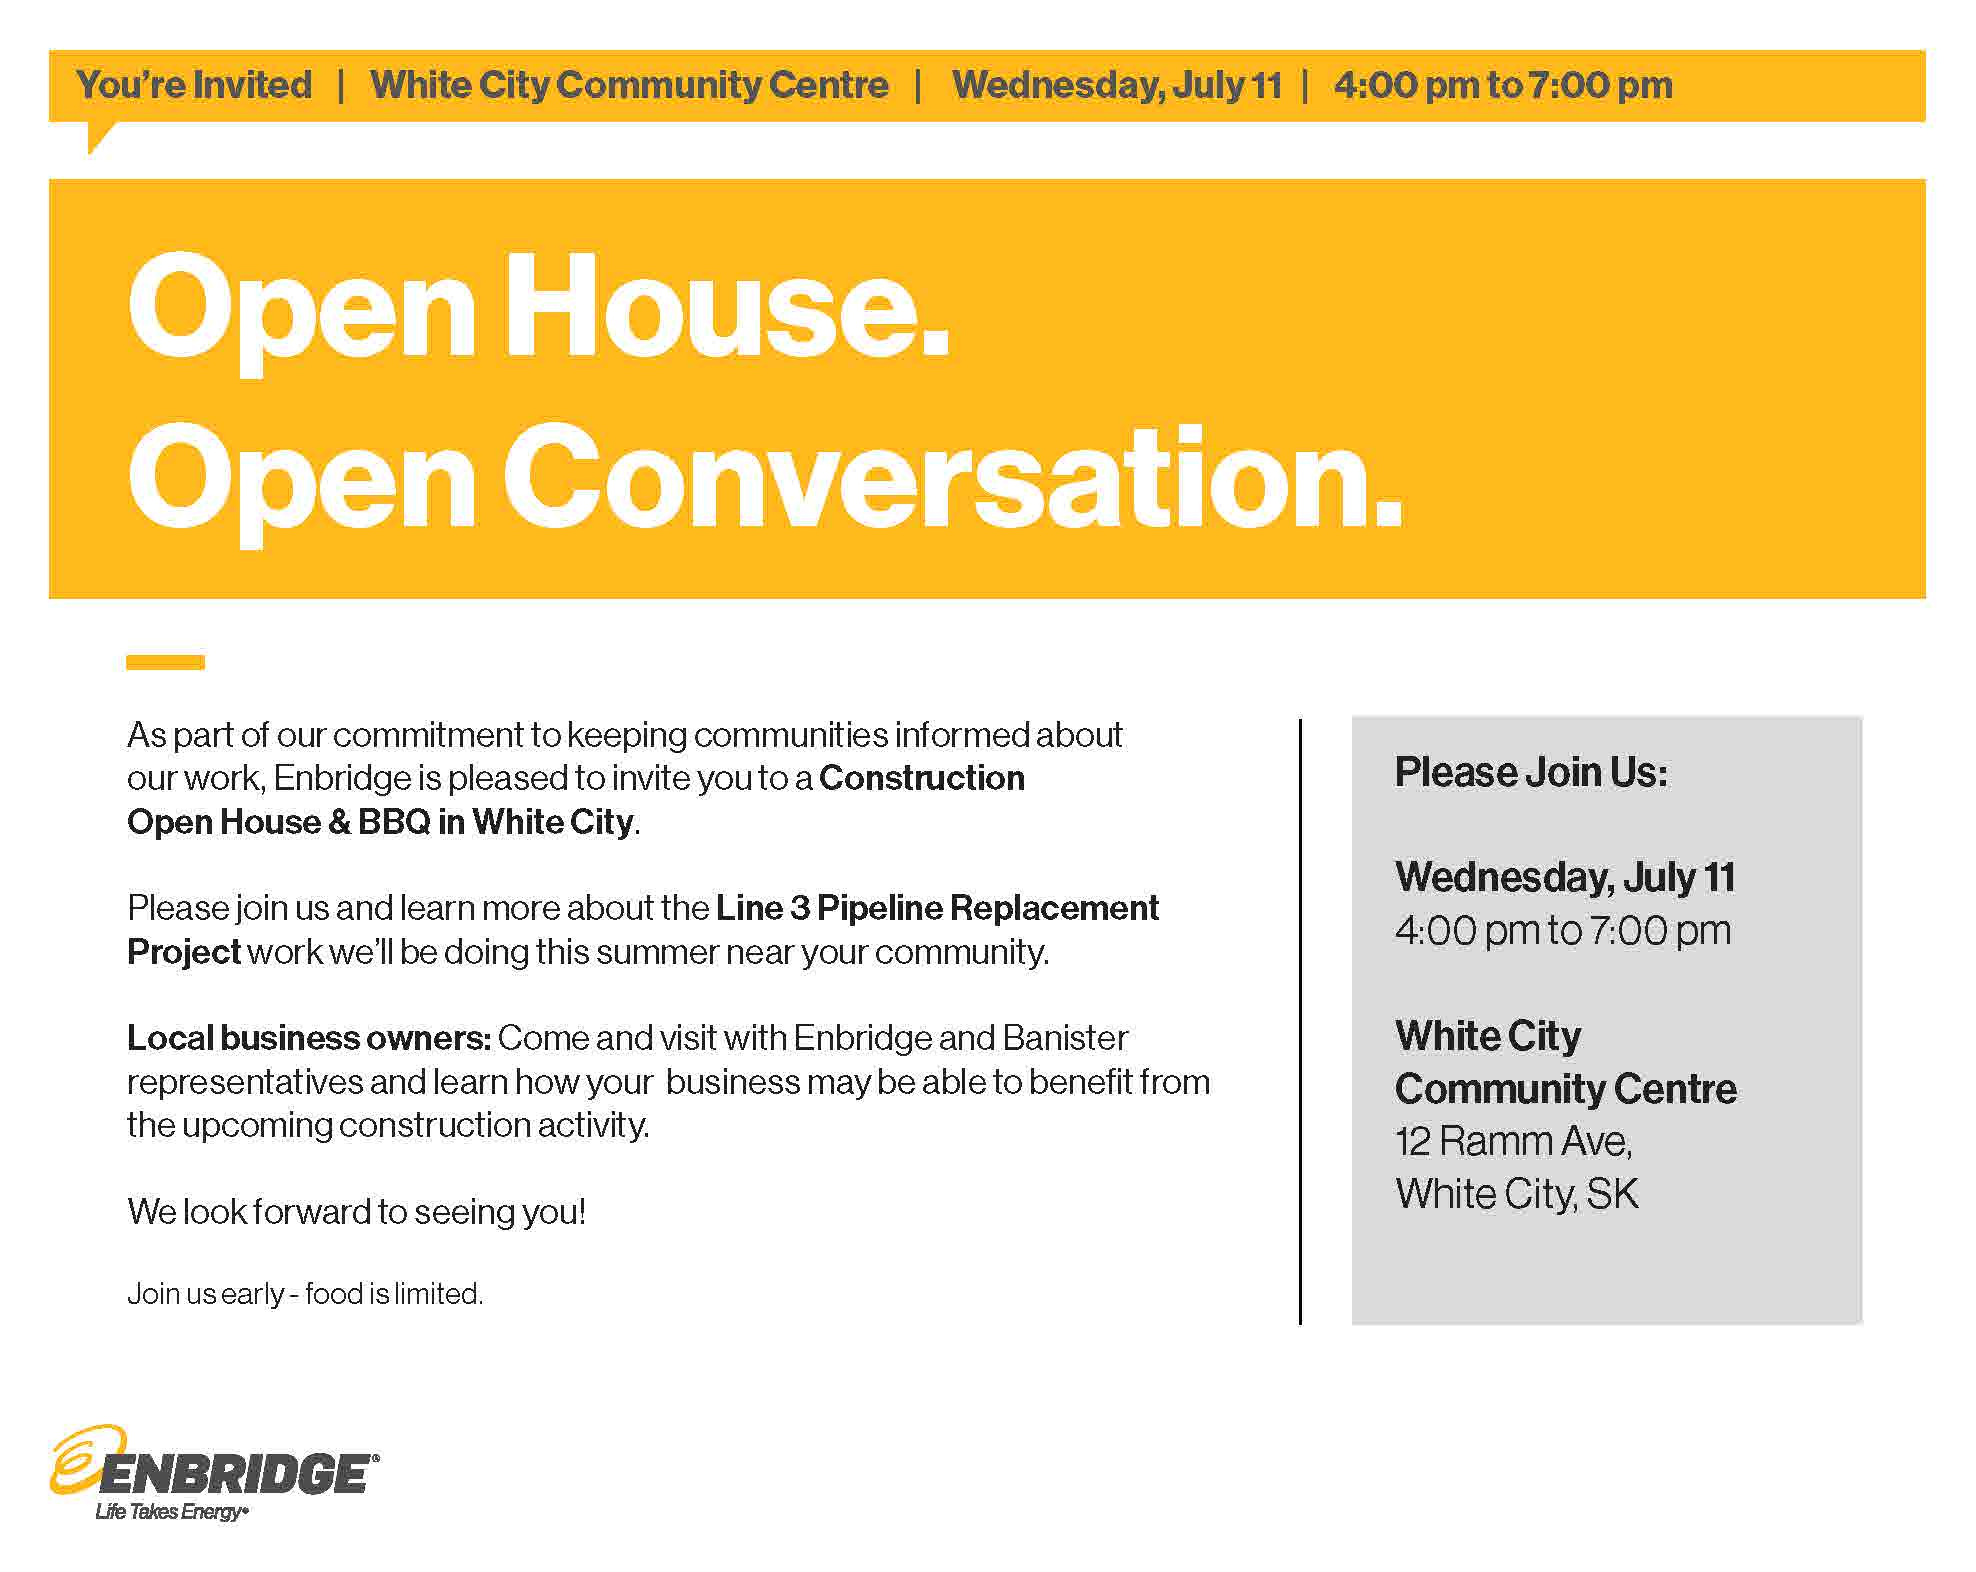 Enbridge Construction Open House & BBQ